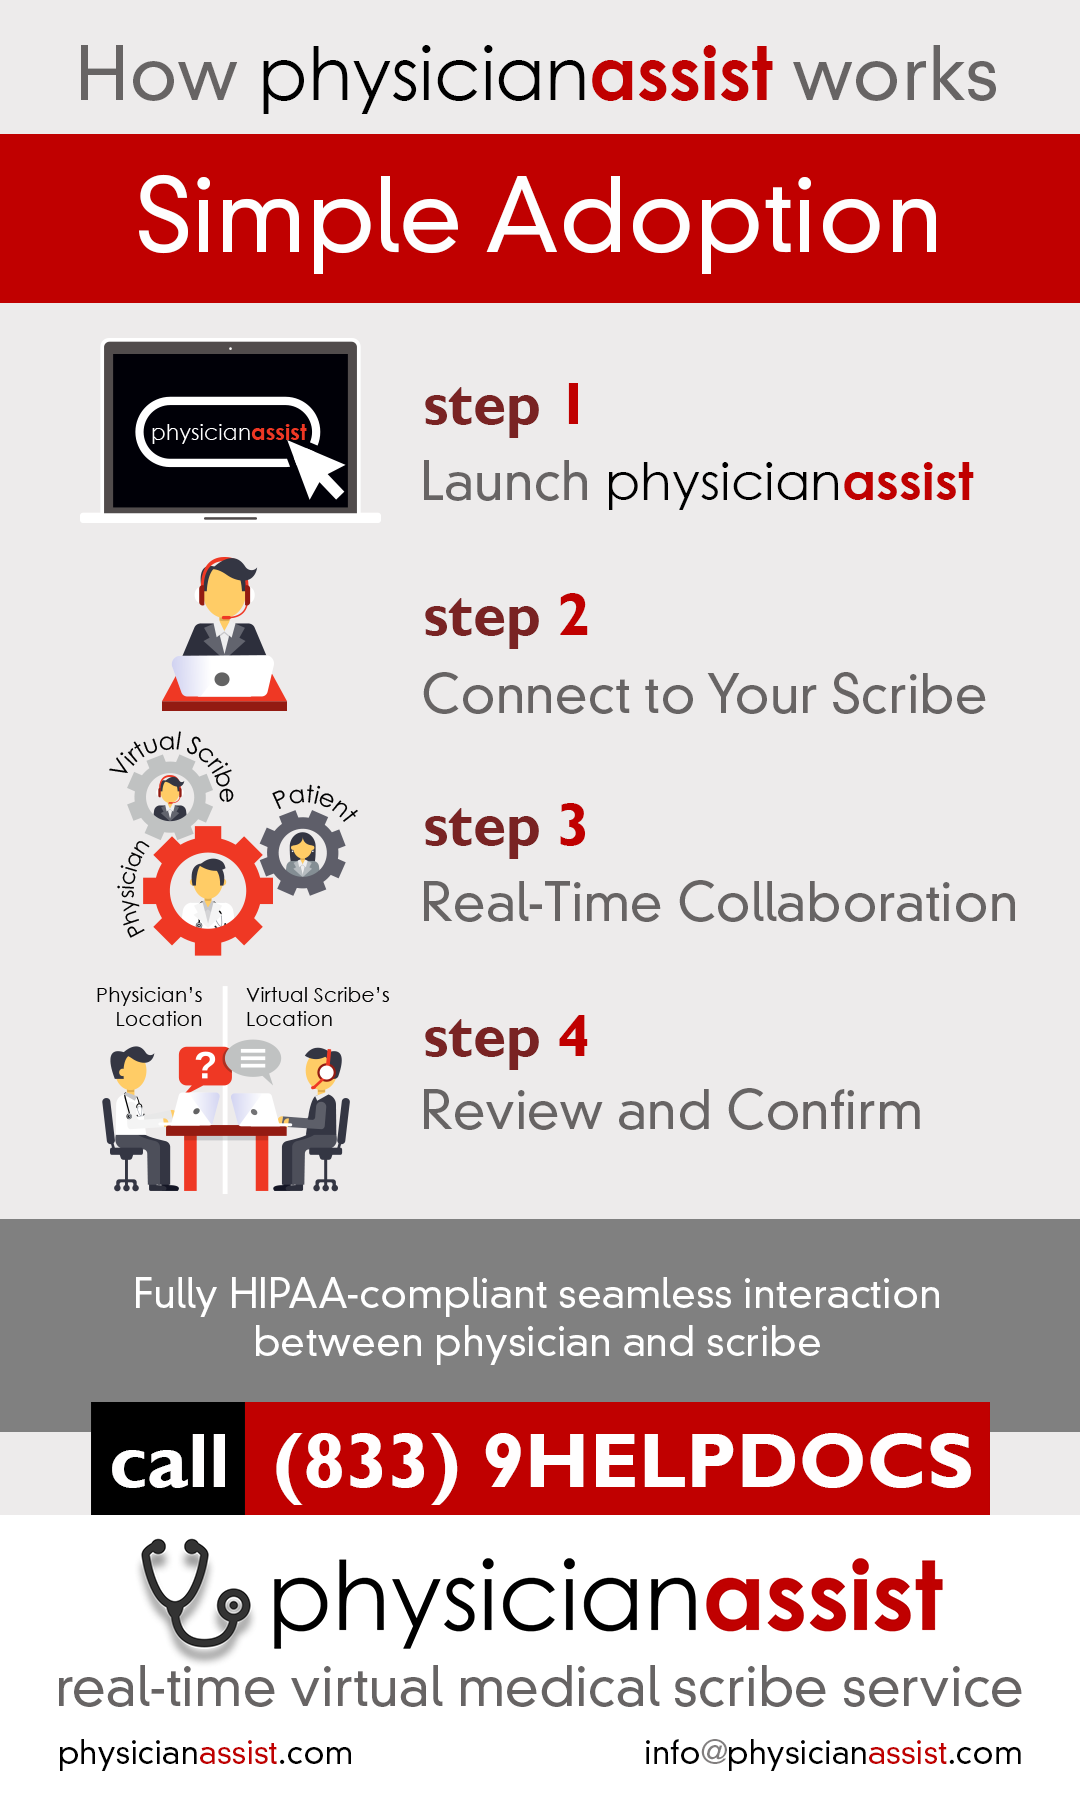 In just a few simple steps, a physician connects to a live